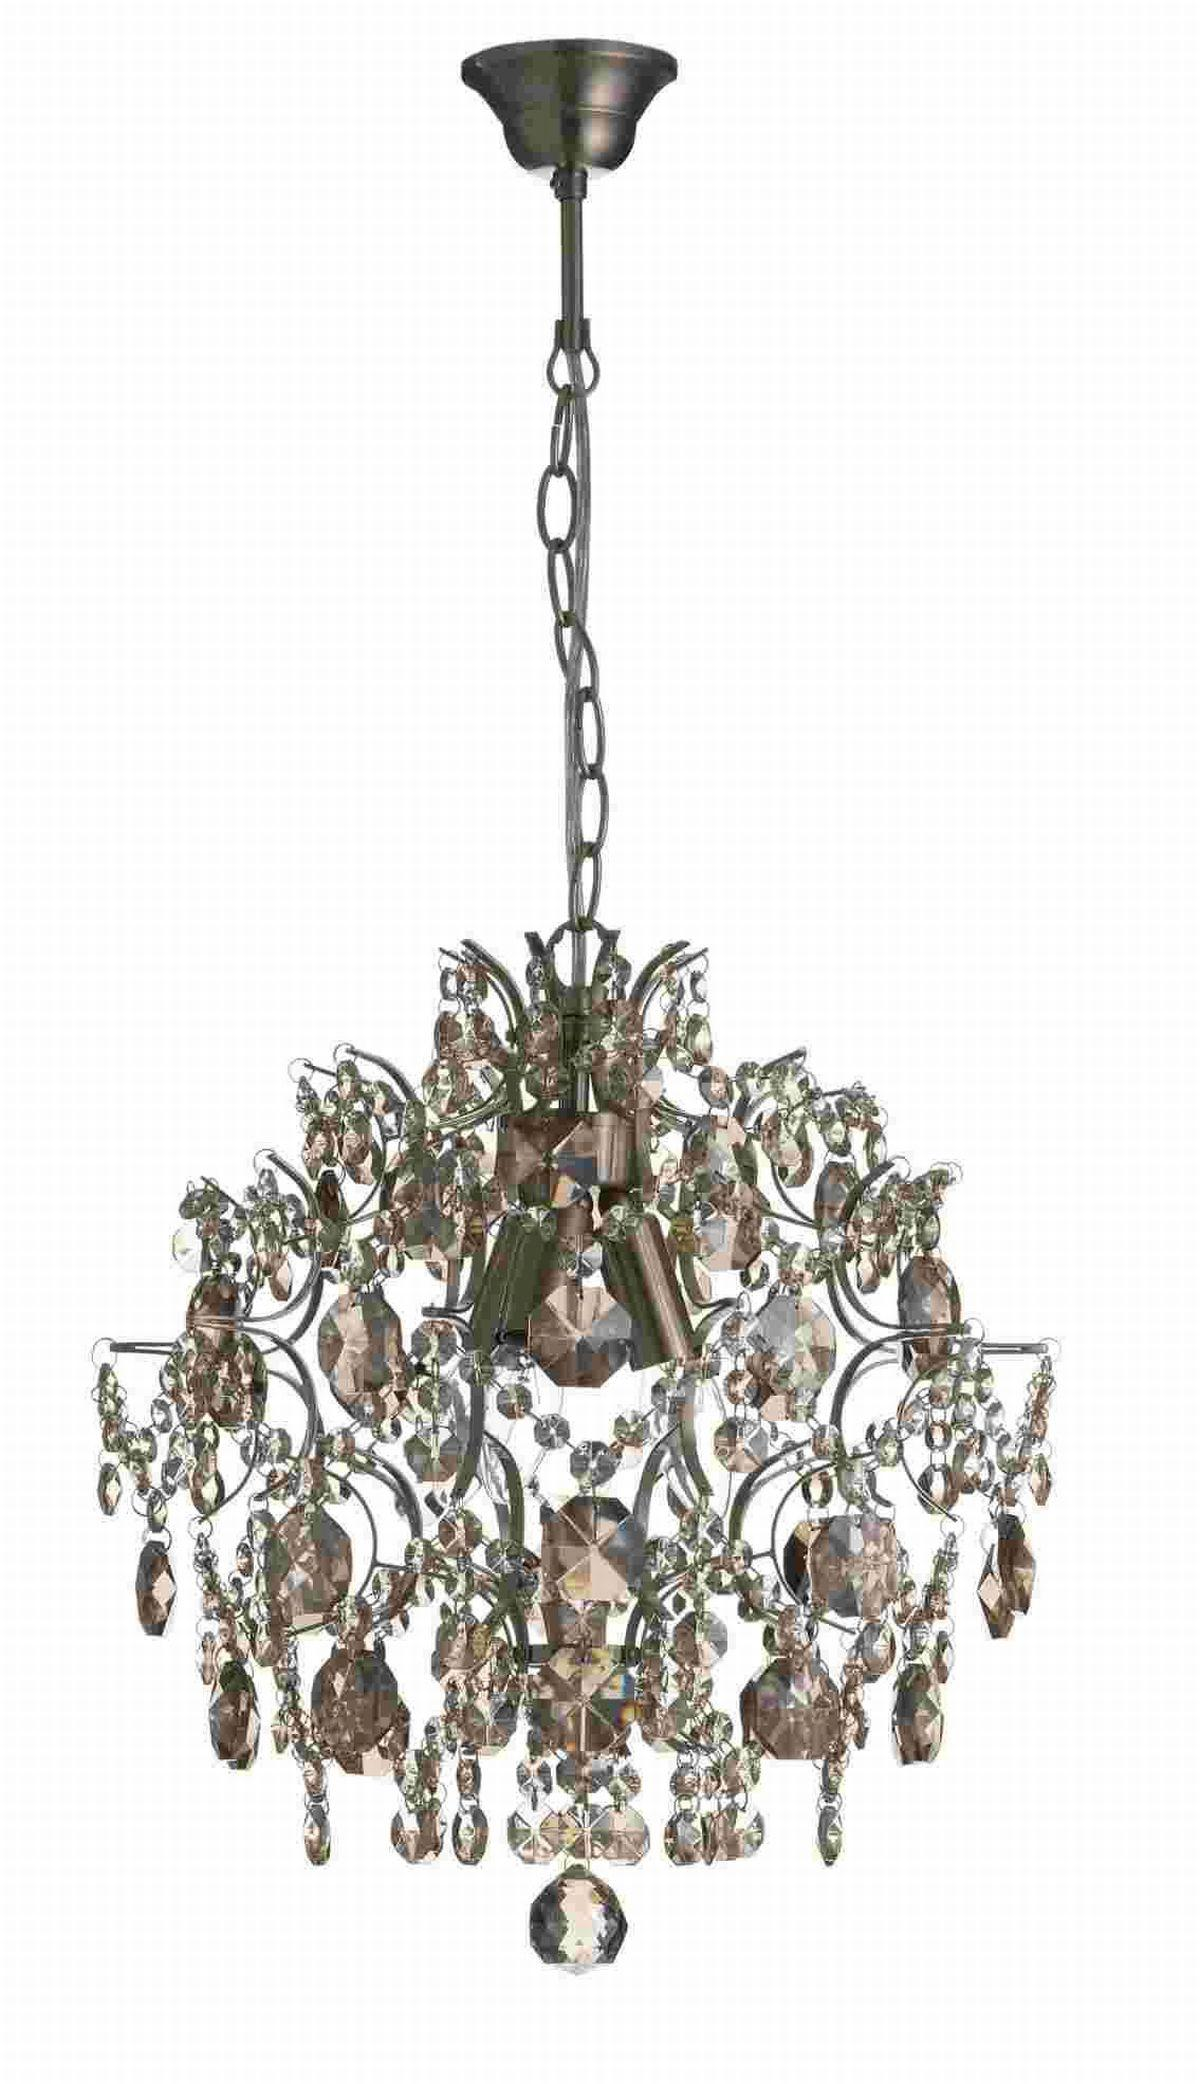 Chandeliers to suit your home chic and contemporary designs for chandeliers to suit your home chic and contemporary designs for every household evelyn chandelier john lewis arubaitofo Choice Image